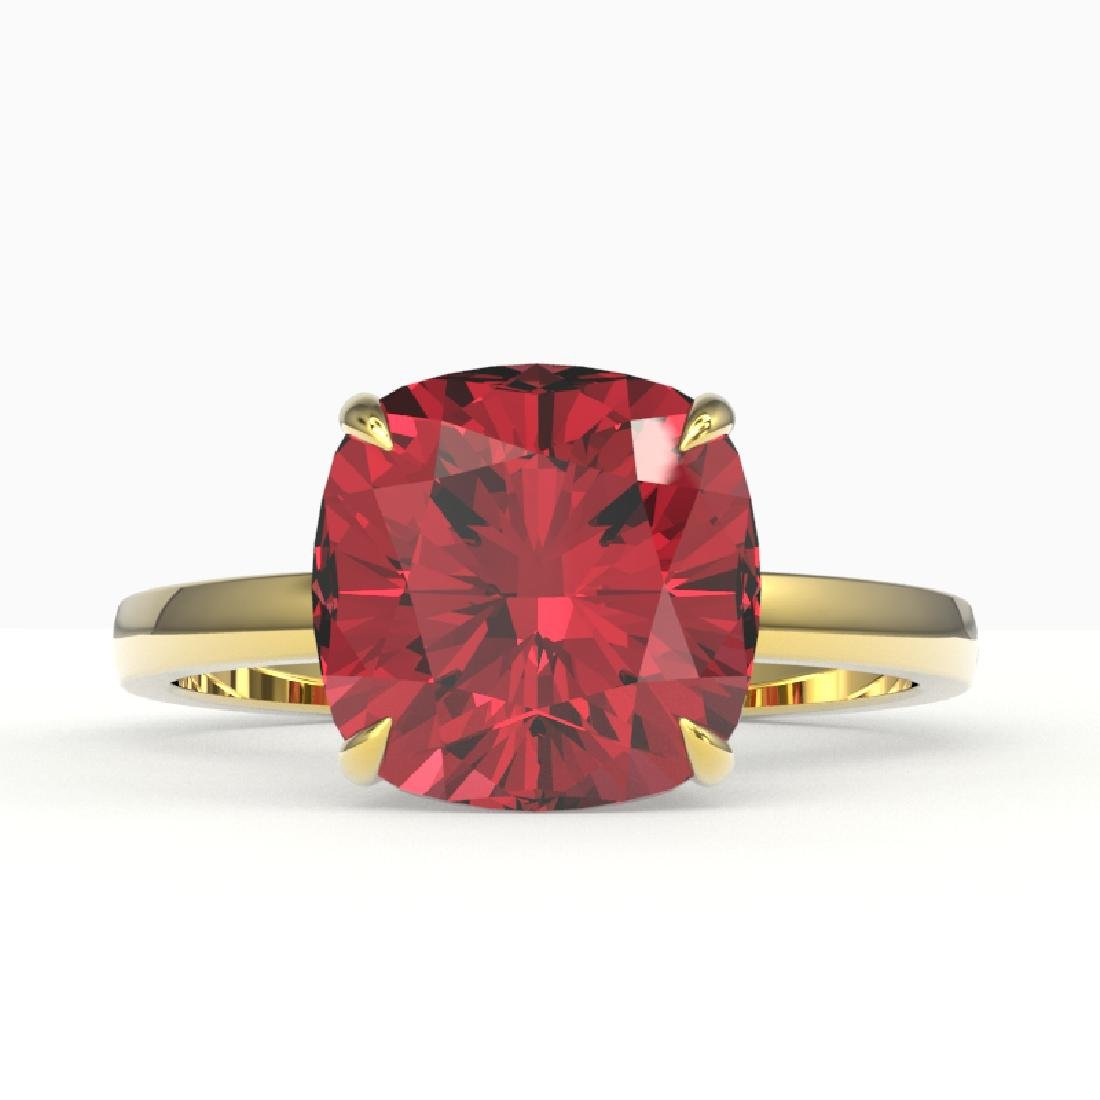 6 CTW Cushion Cut Pink Tourmaline Inspired Solitaire